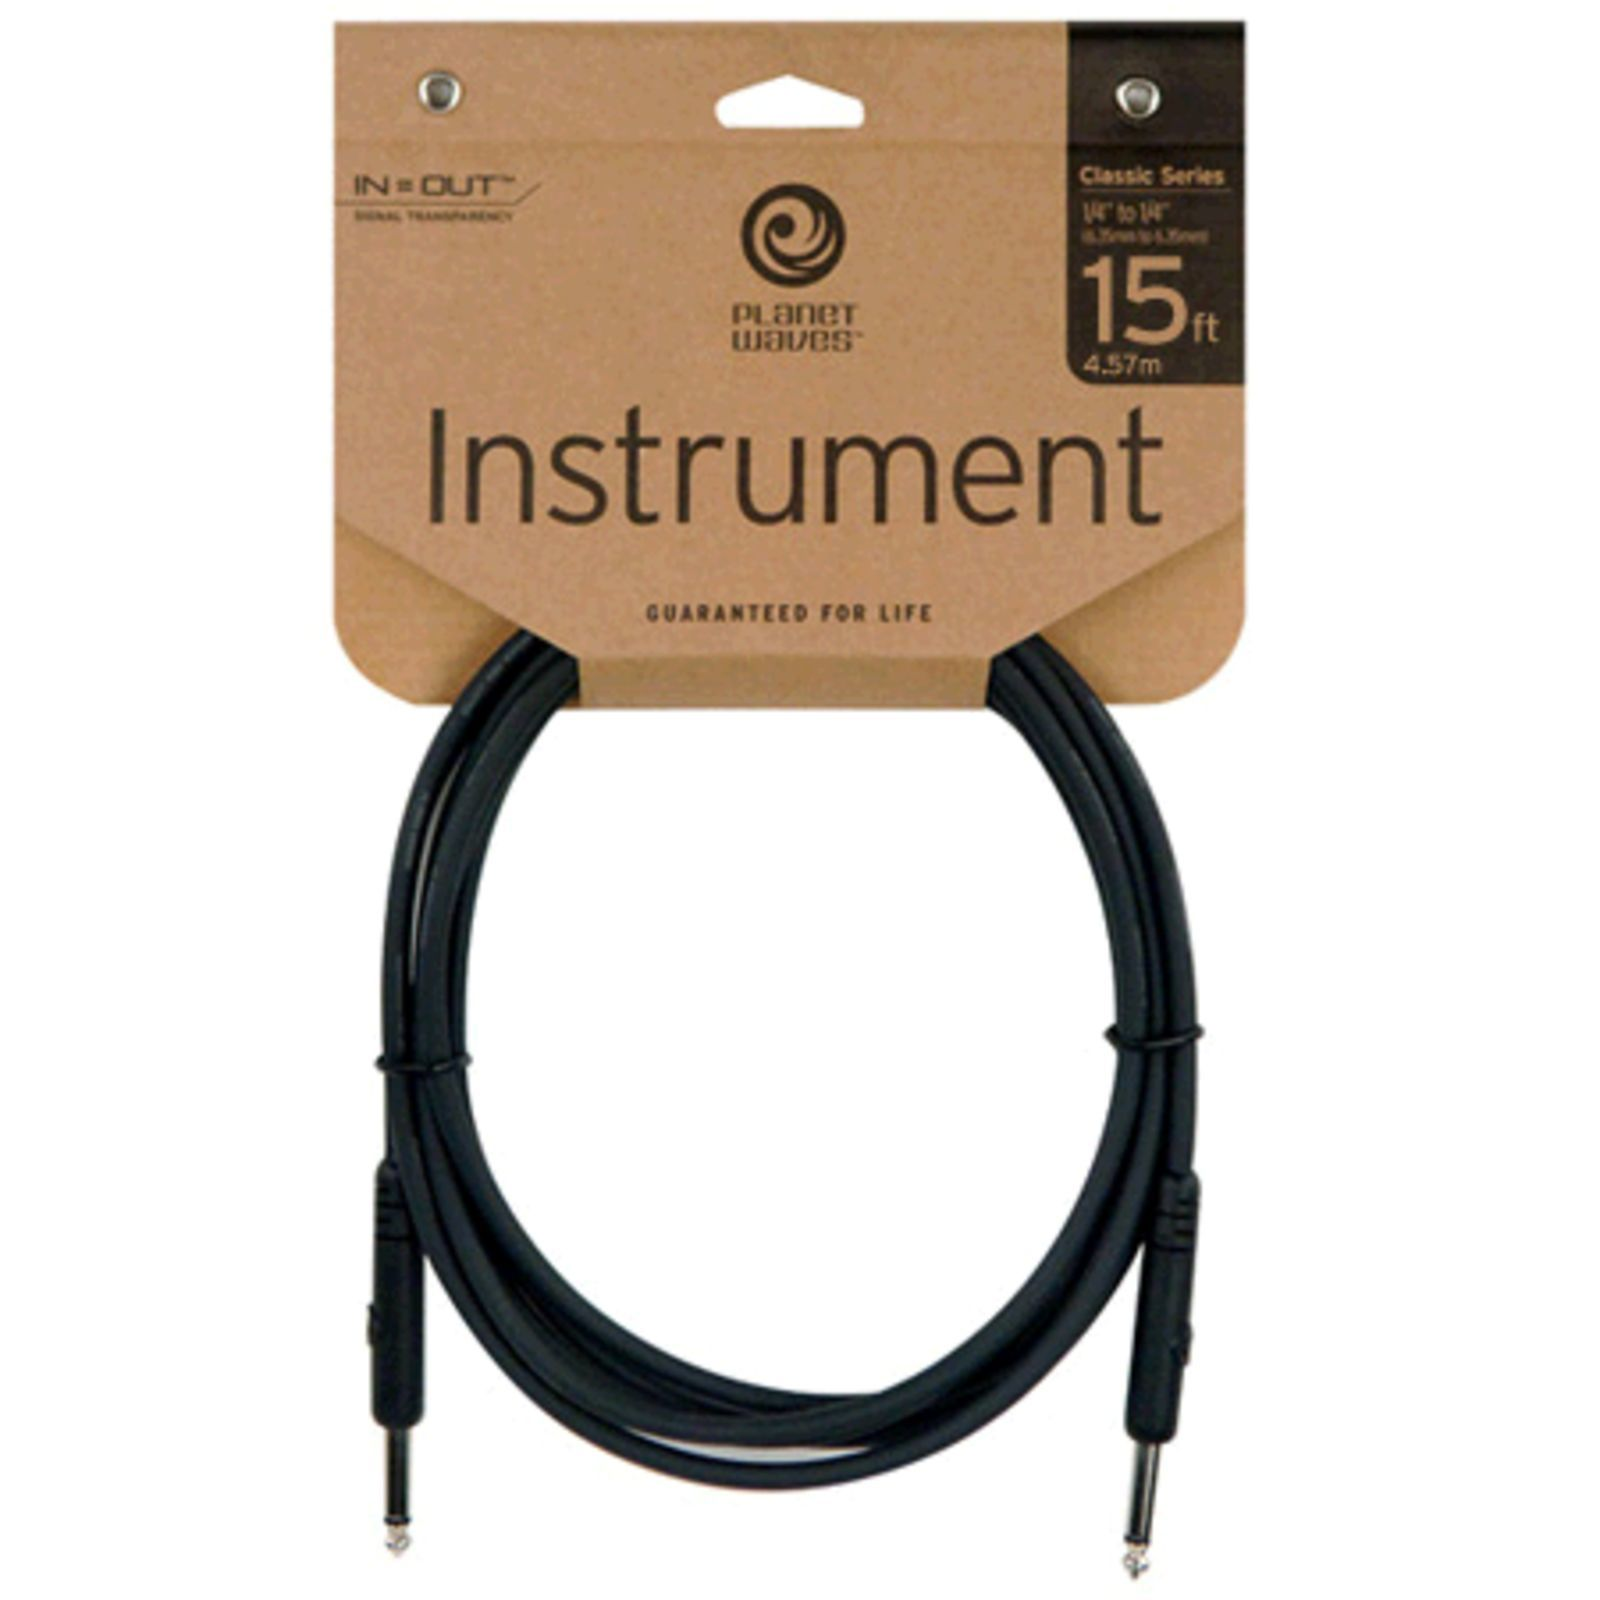 D'Addario Planet Waves Instrument cable 4,5 meter PW-CGT-15 Straight Product Image